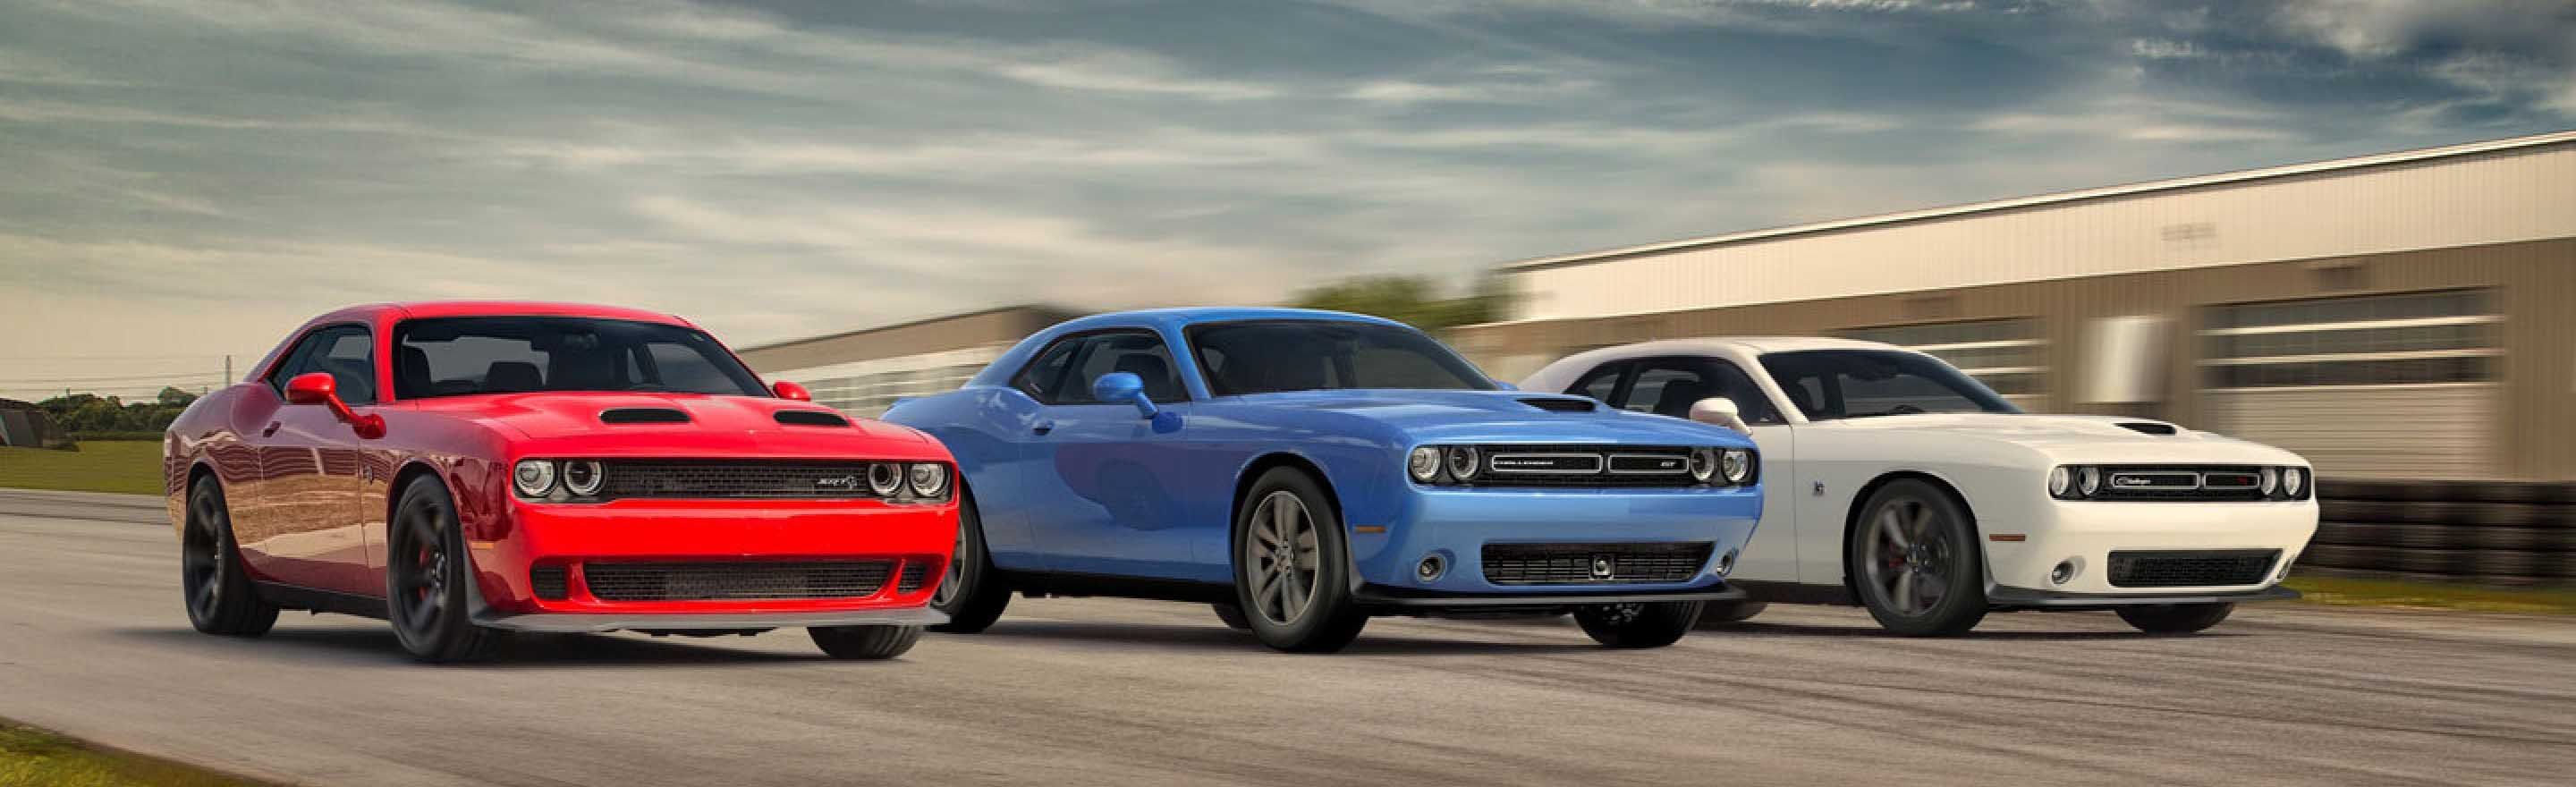 2019 Dodge Challenger For Sale Near Broussard, Louisiana